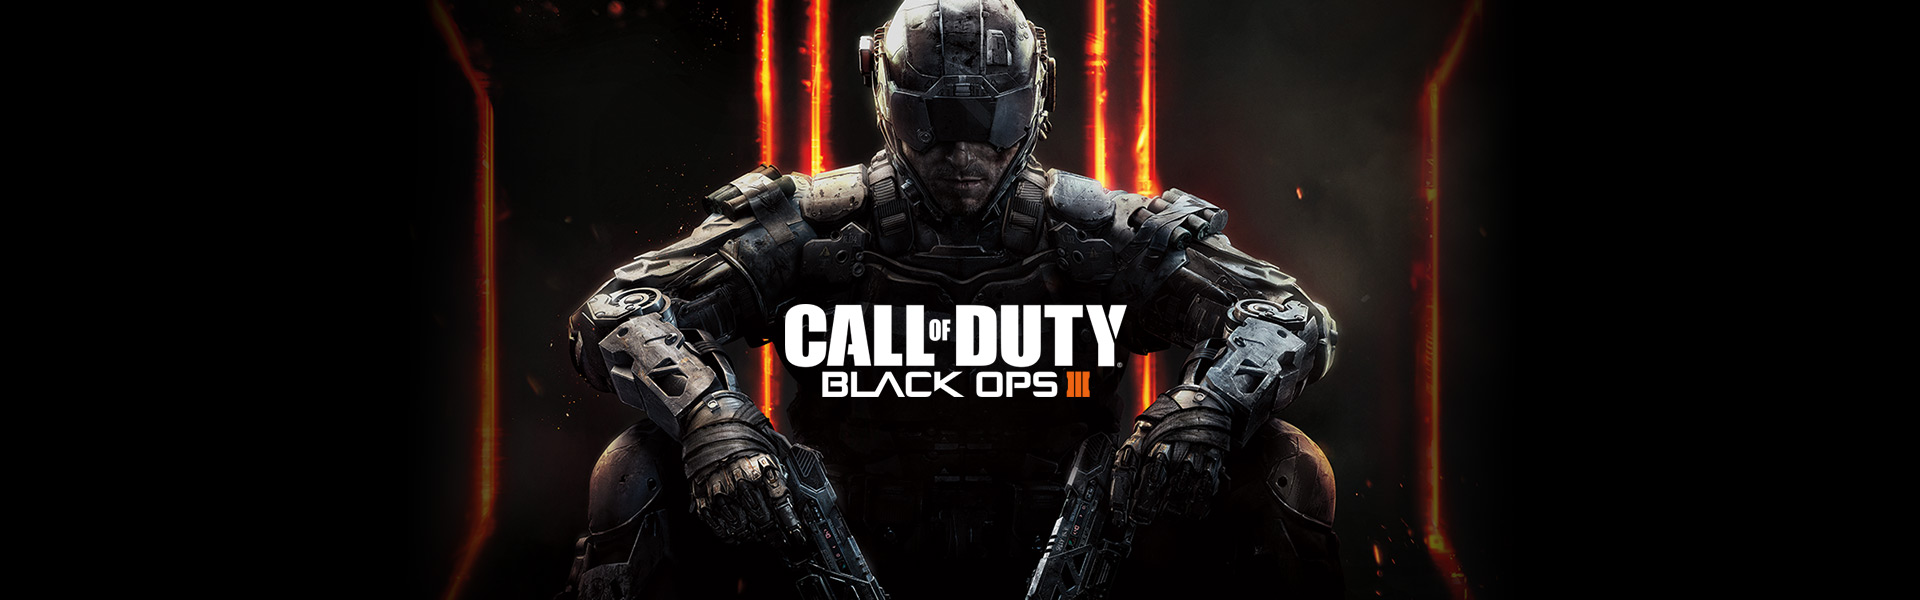 Call of Duty Black Ops 3 logo with future looking soldier holding two pistols facing forward in background.